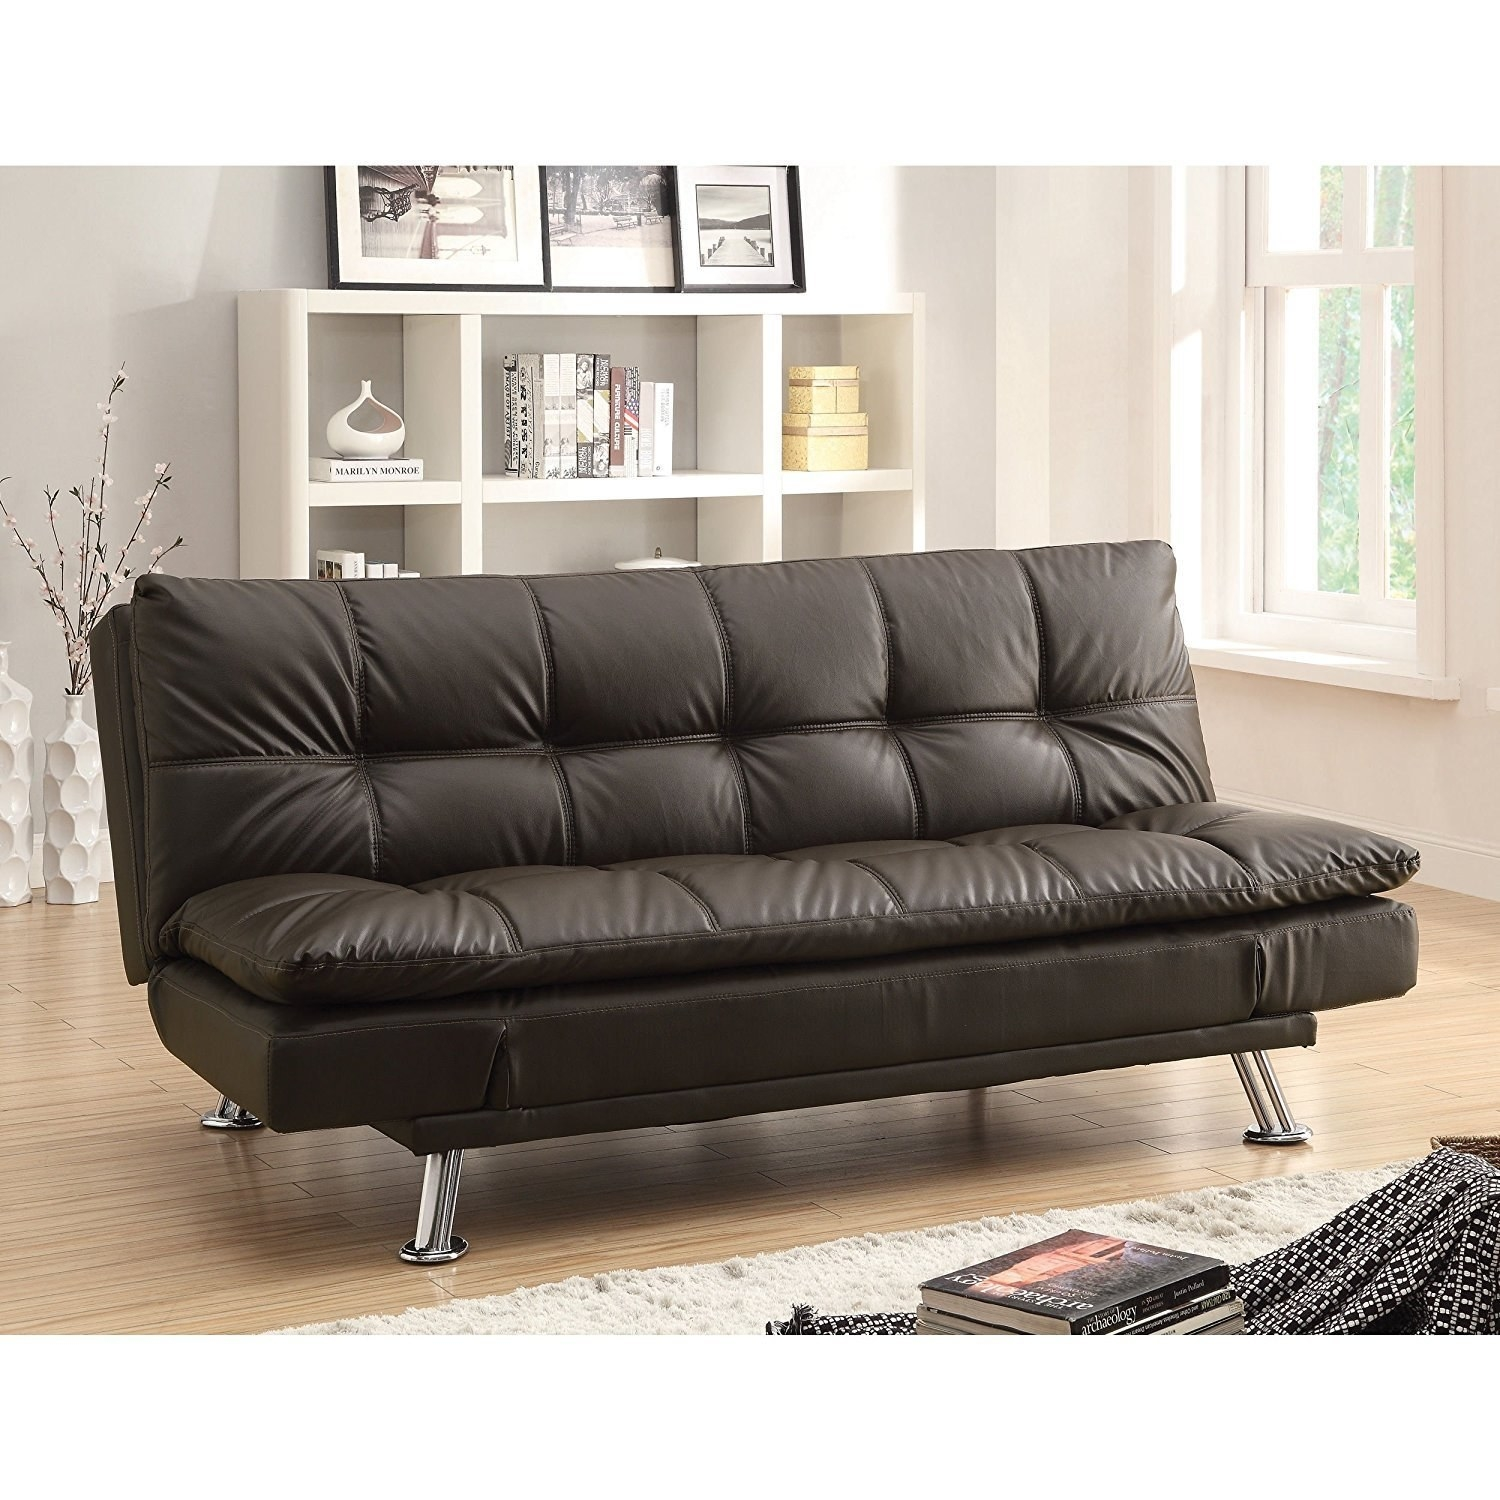 a sofa bed for those living in a small apartment bedroom that want a bed they can easily foldup or host overnight guests on